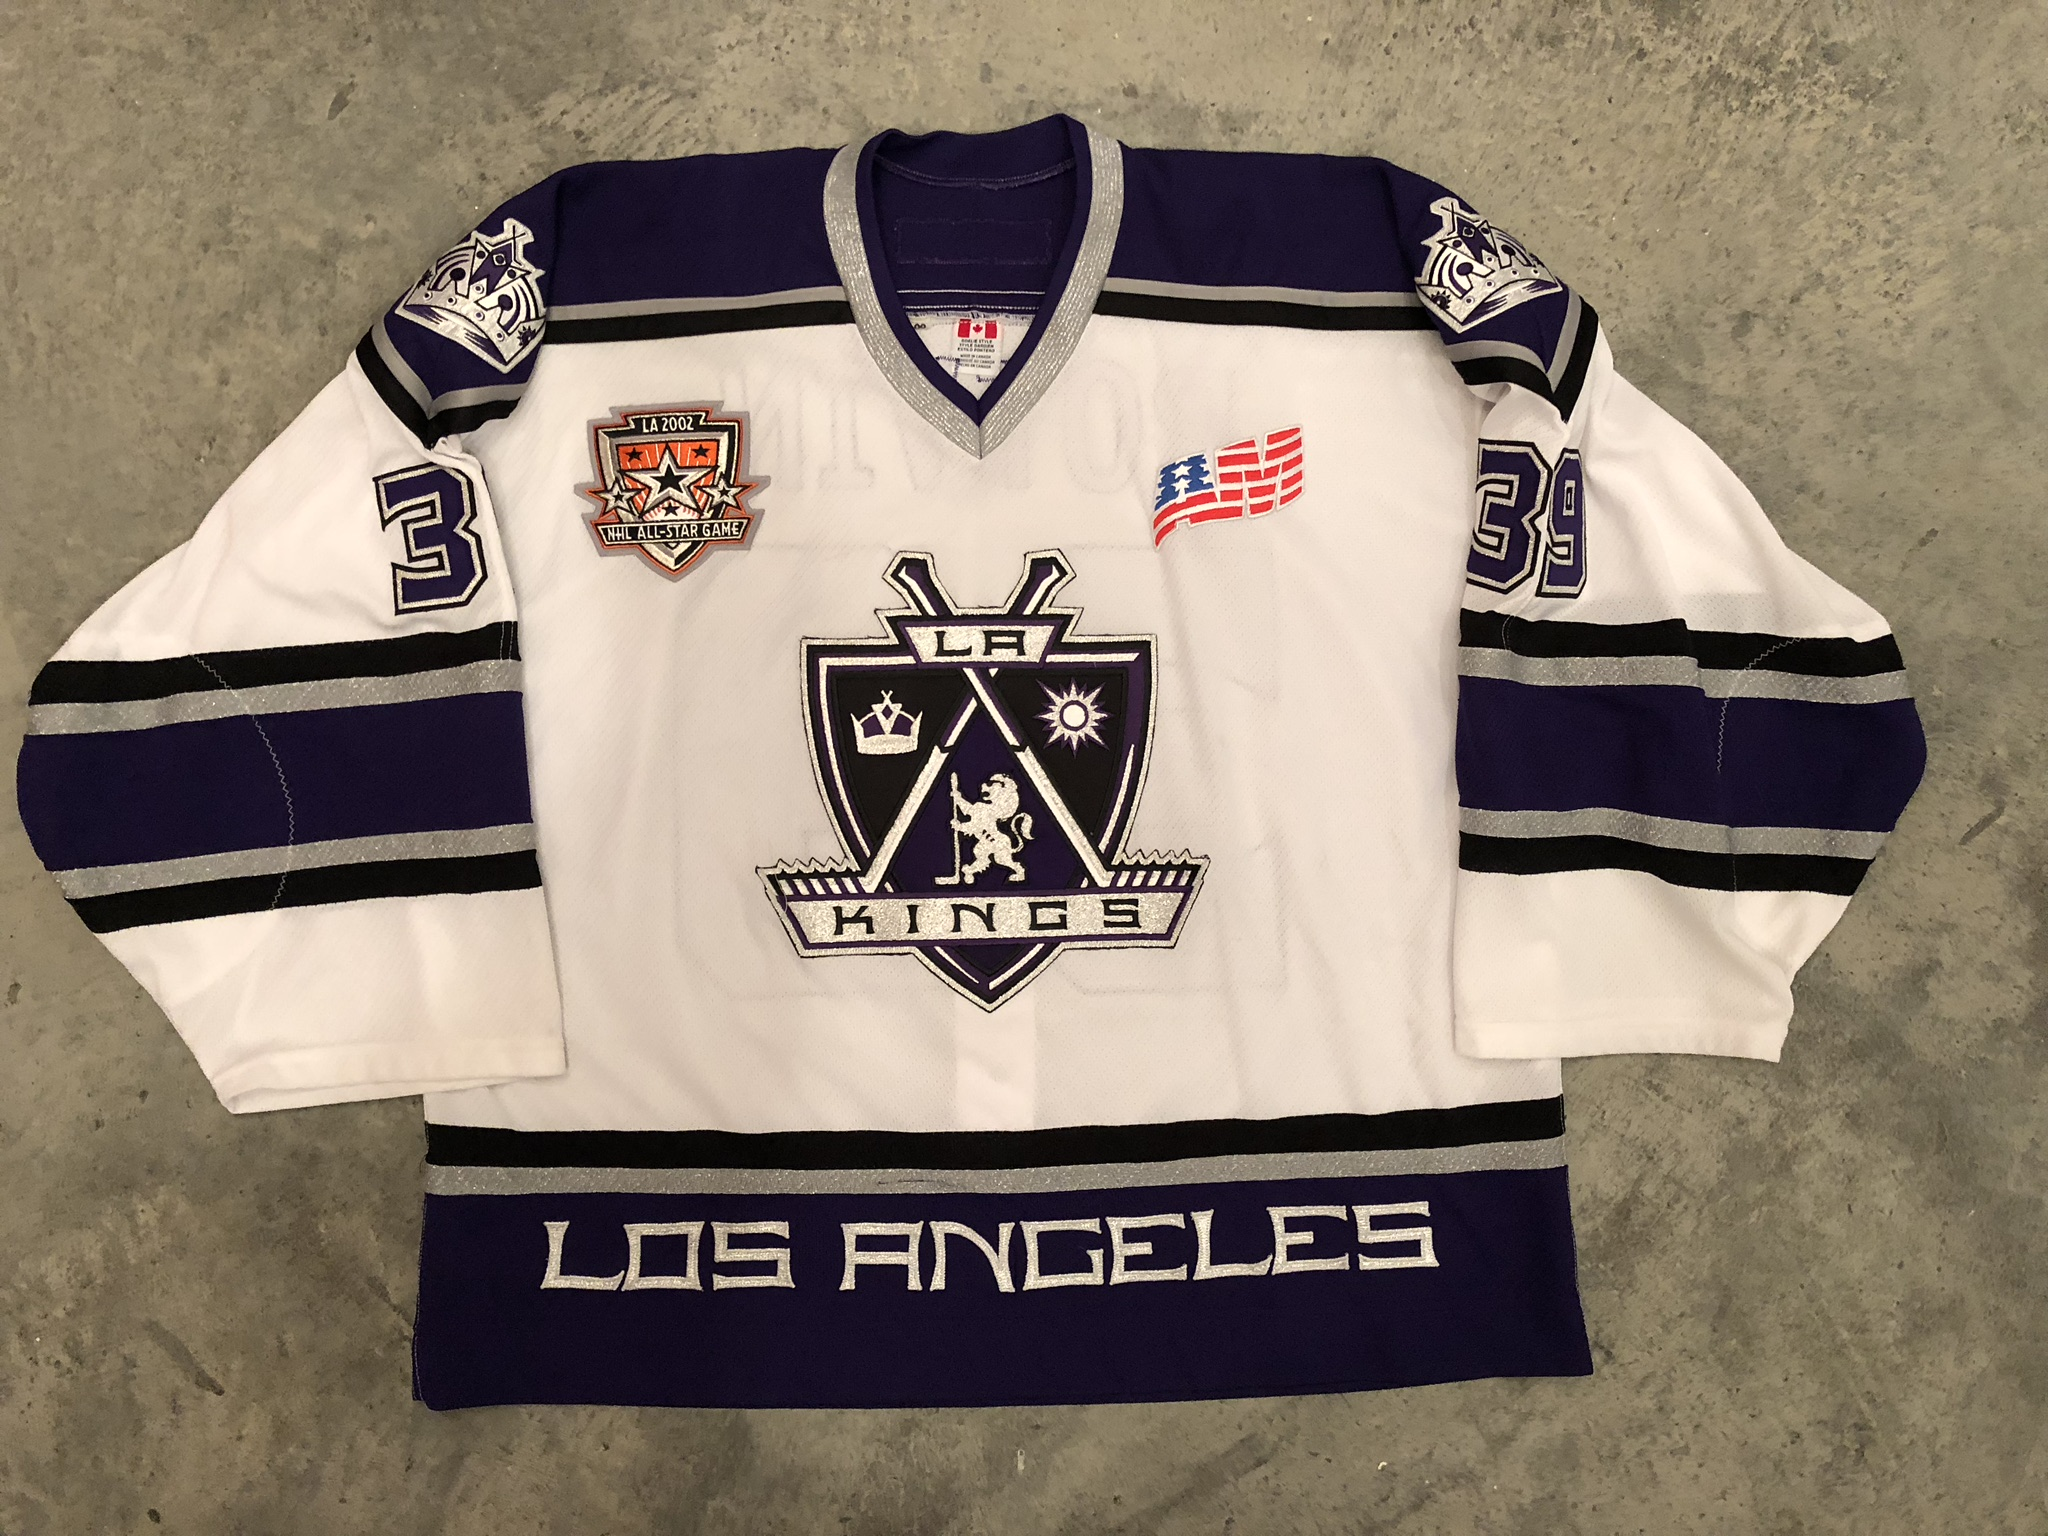 2001-02 Felix Potvin game worn home jersey with 2002 NHL All Star Game patch and Ace Bailey & Mark Bavis memorial patch